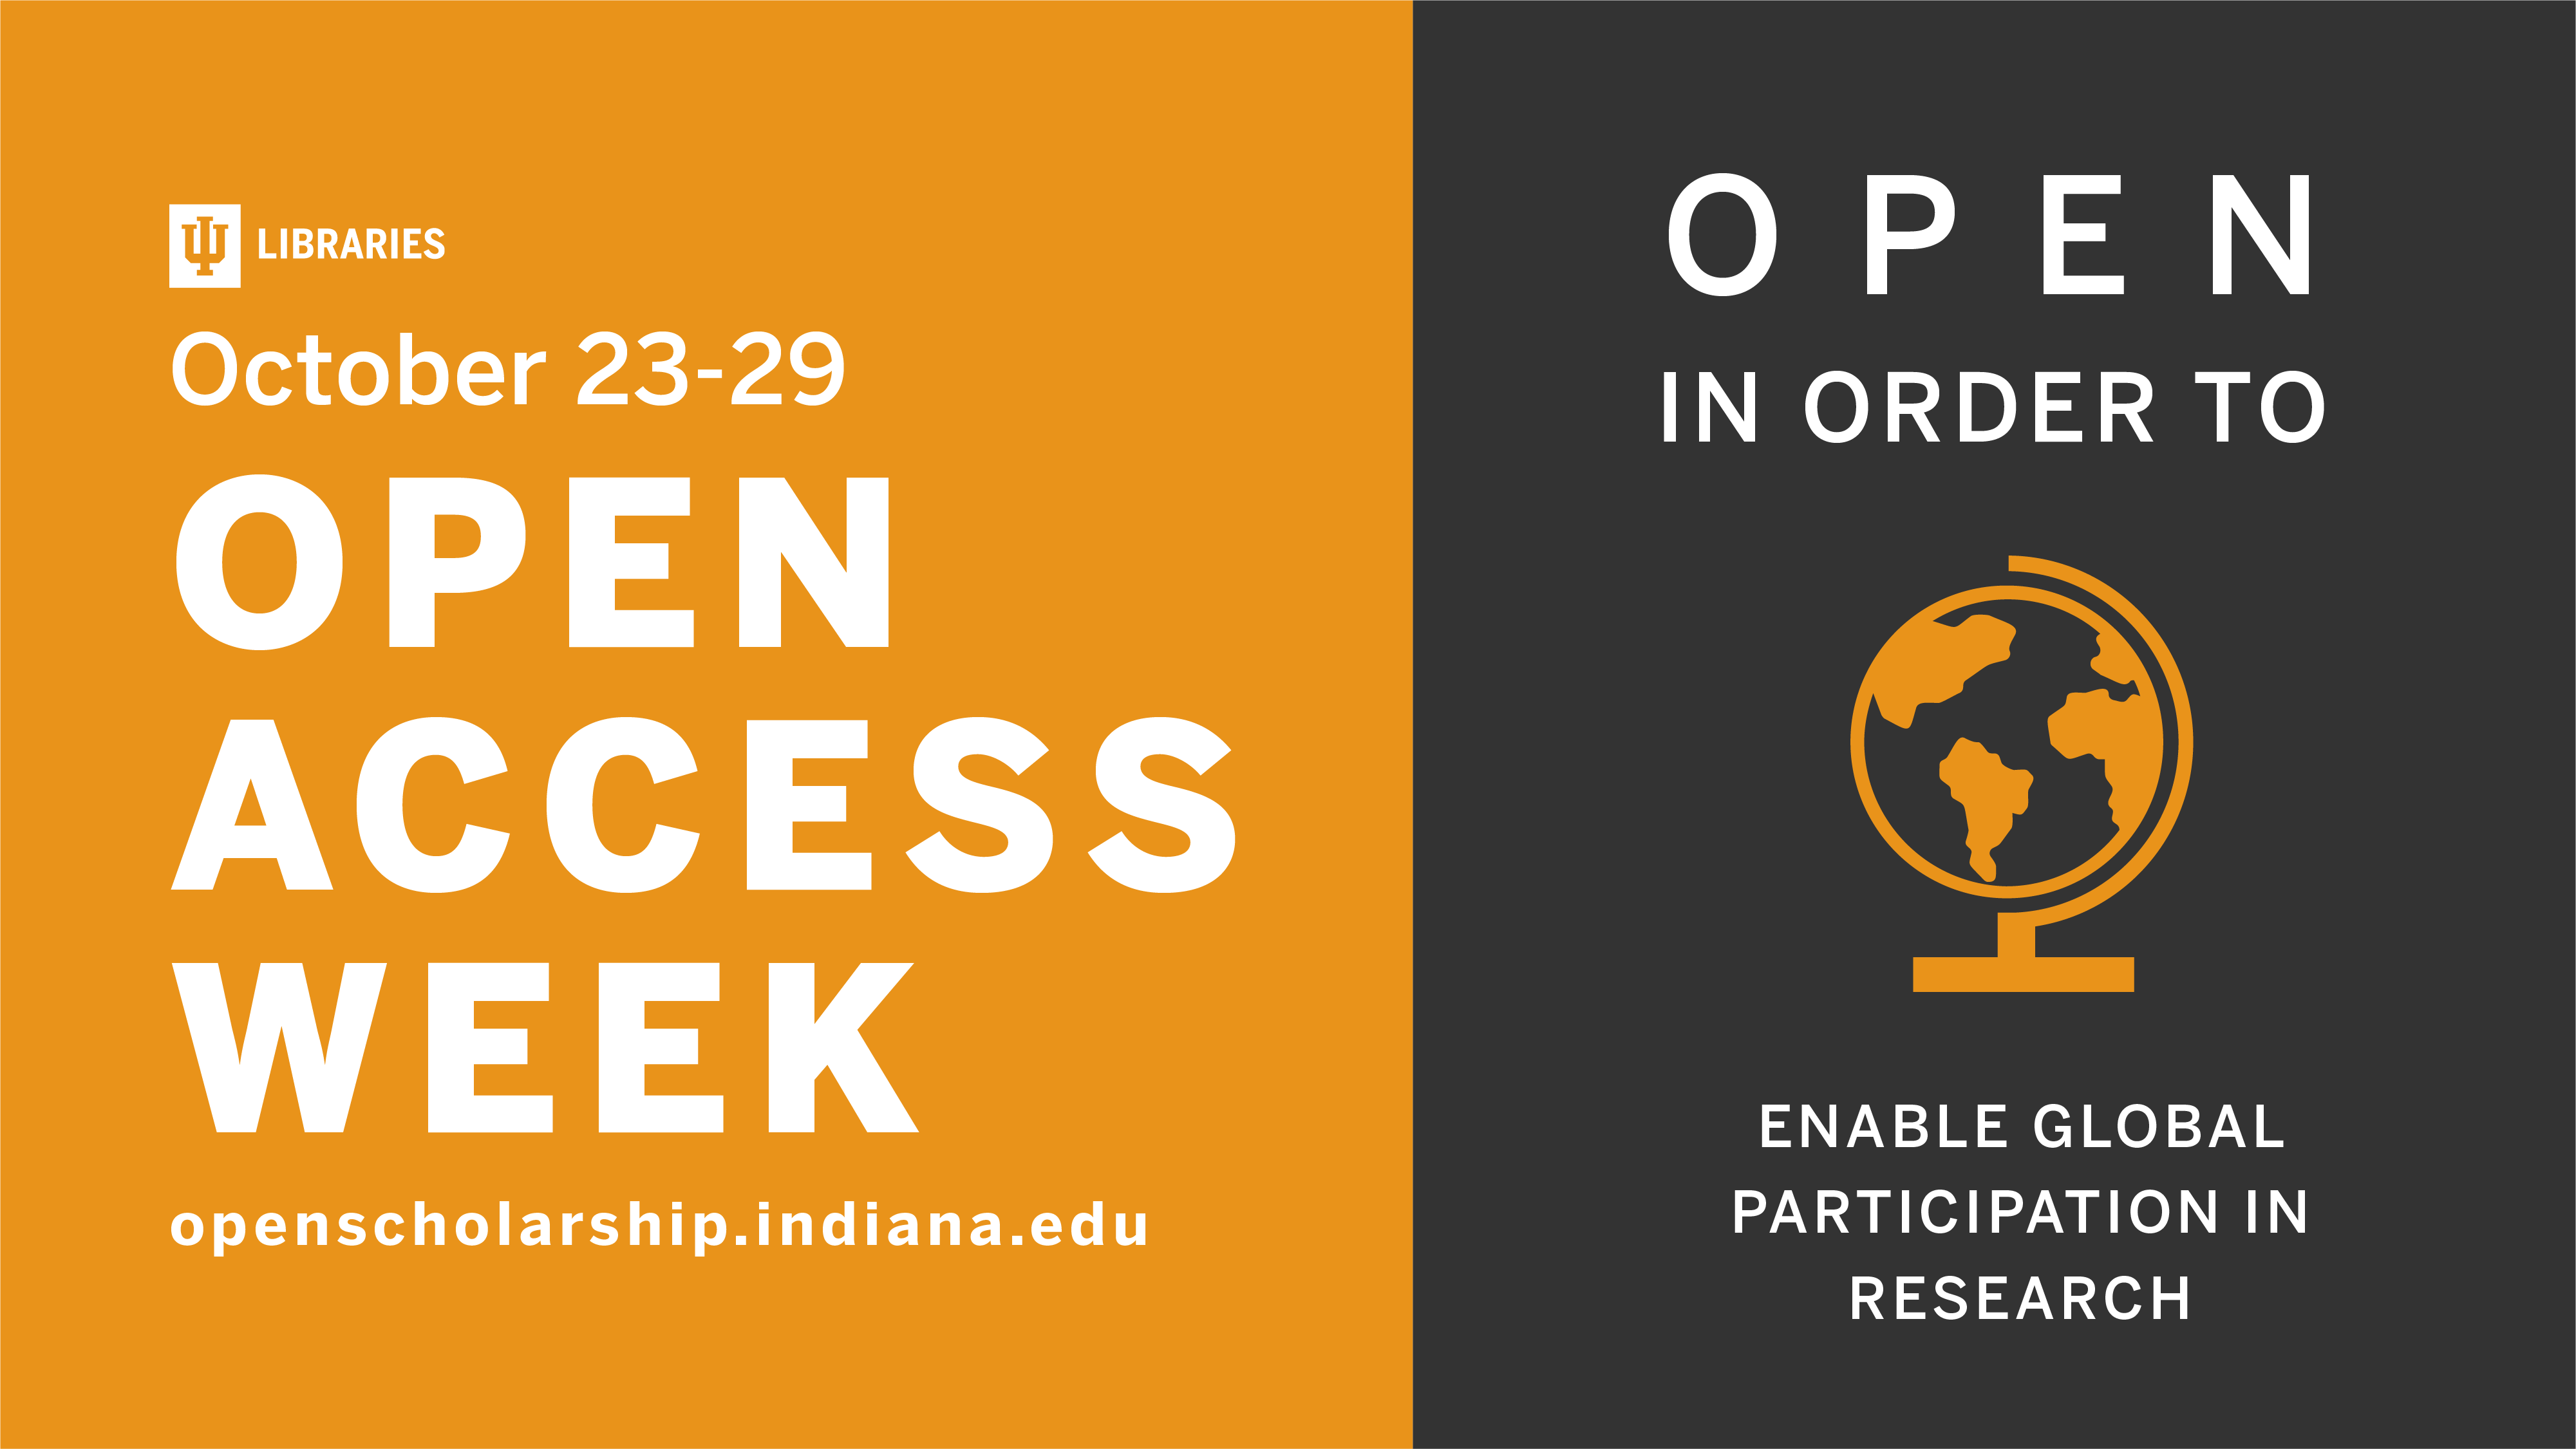 Images 2 & 3: Open Access Week Promotional Materials